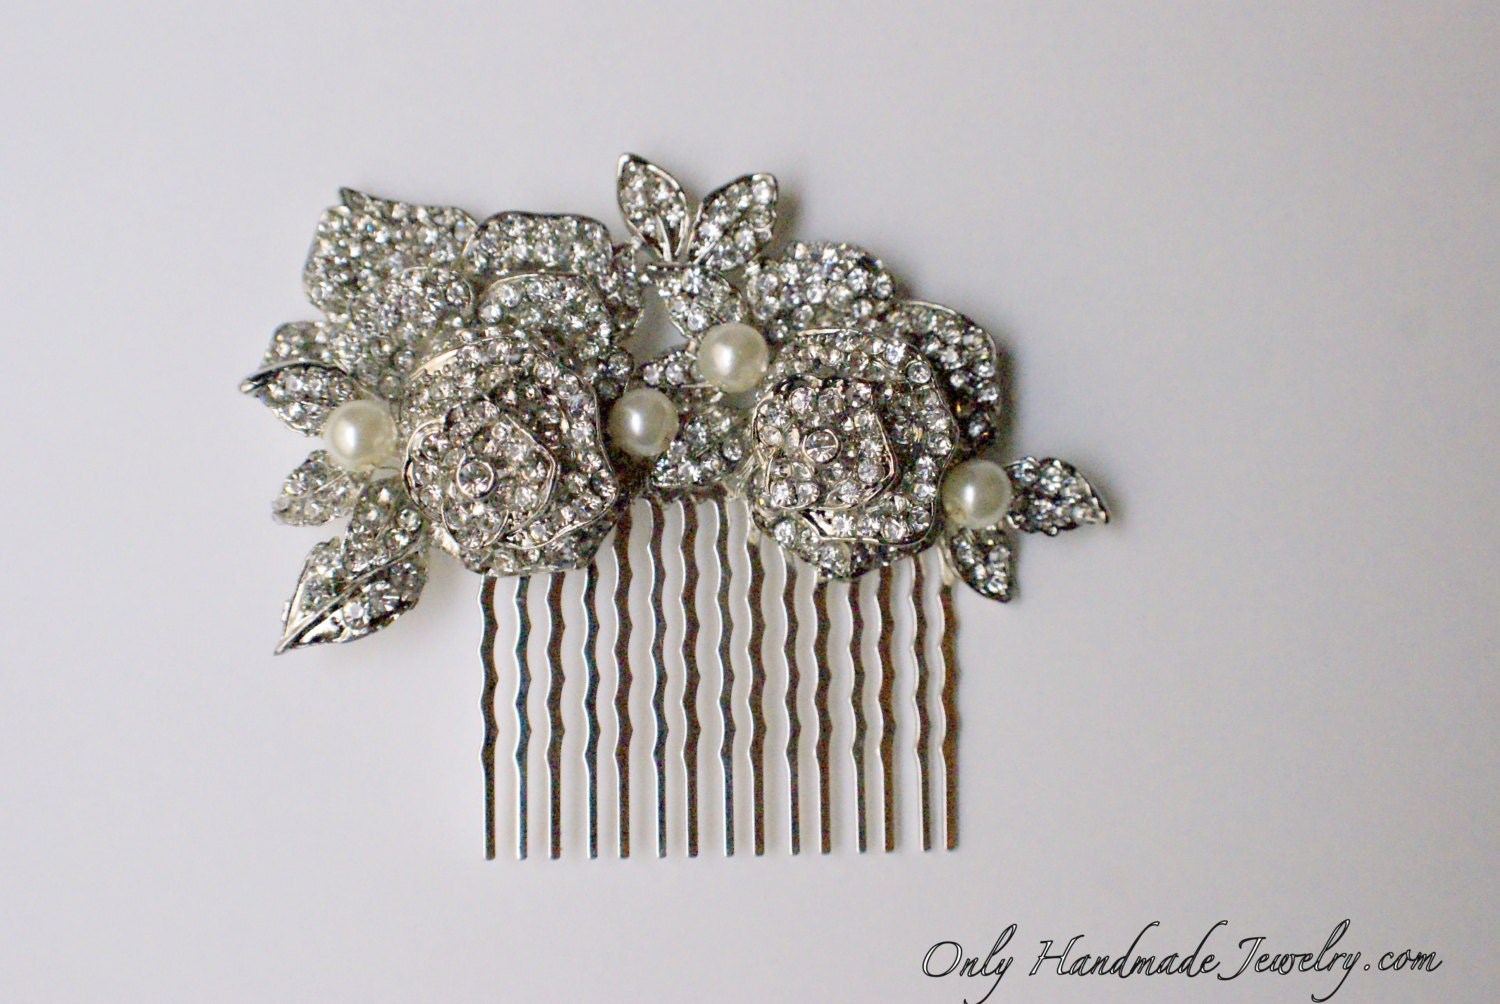 Bridal flowers hair comb. Vintage style crystal wedding hair piece.  Bridal head piece crystals roses. Bridal party. Bridesmaids gifts